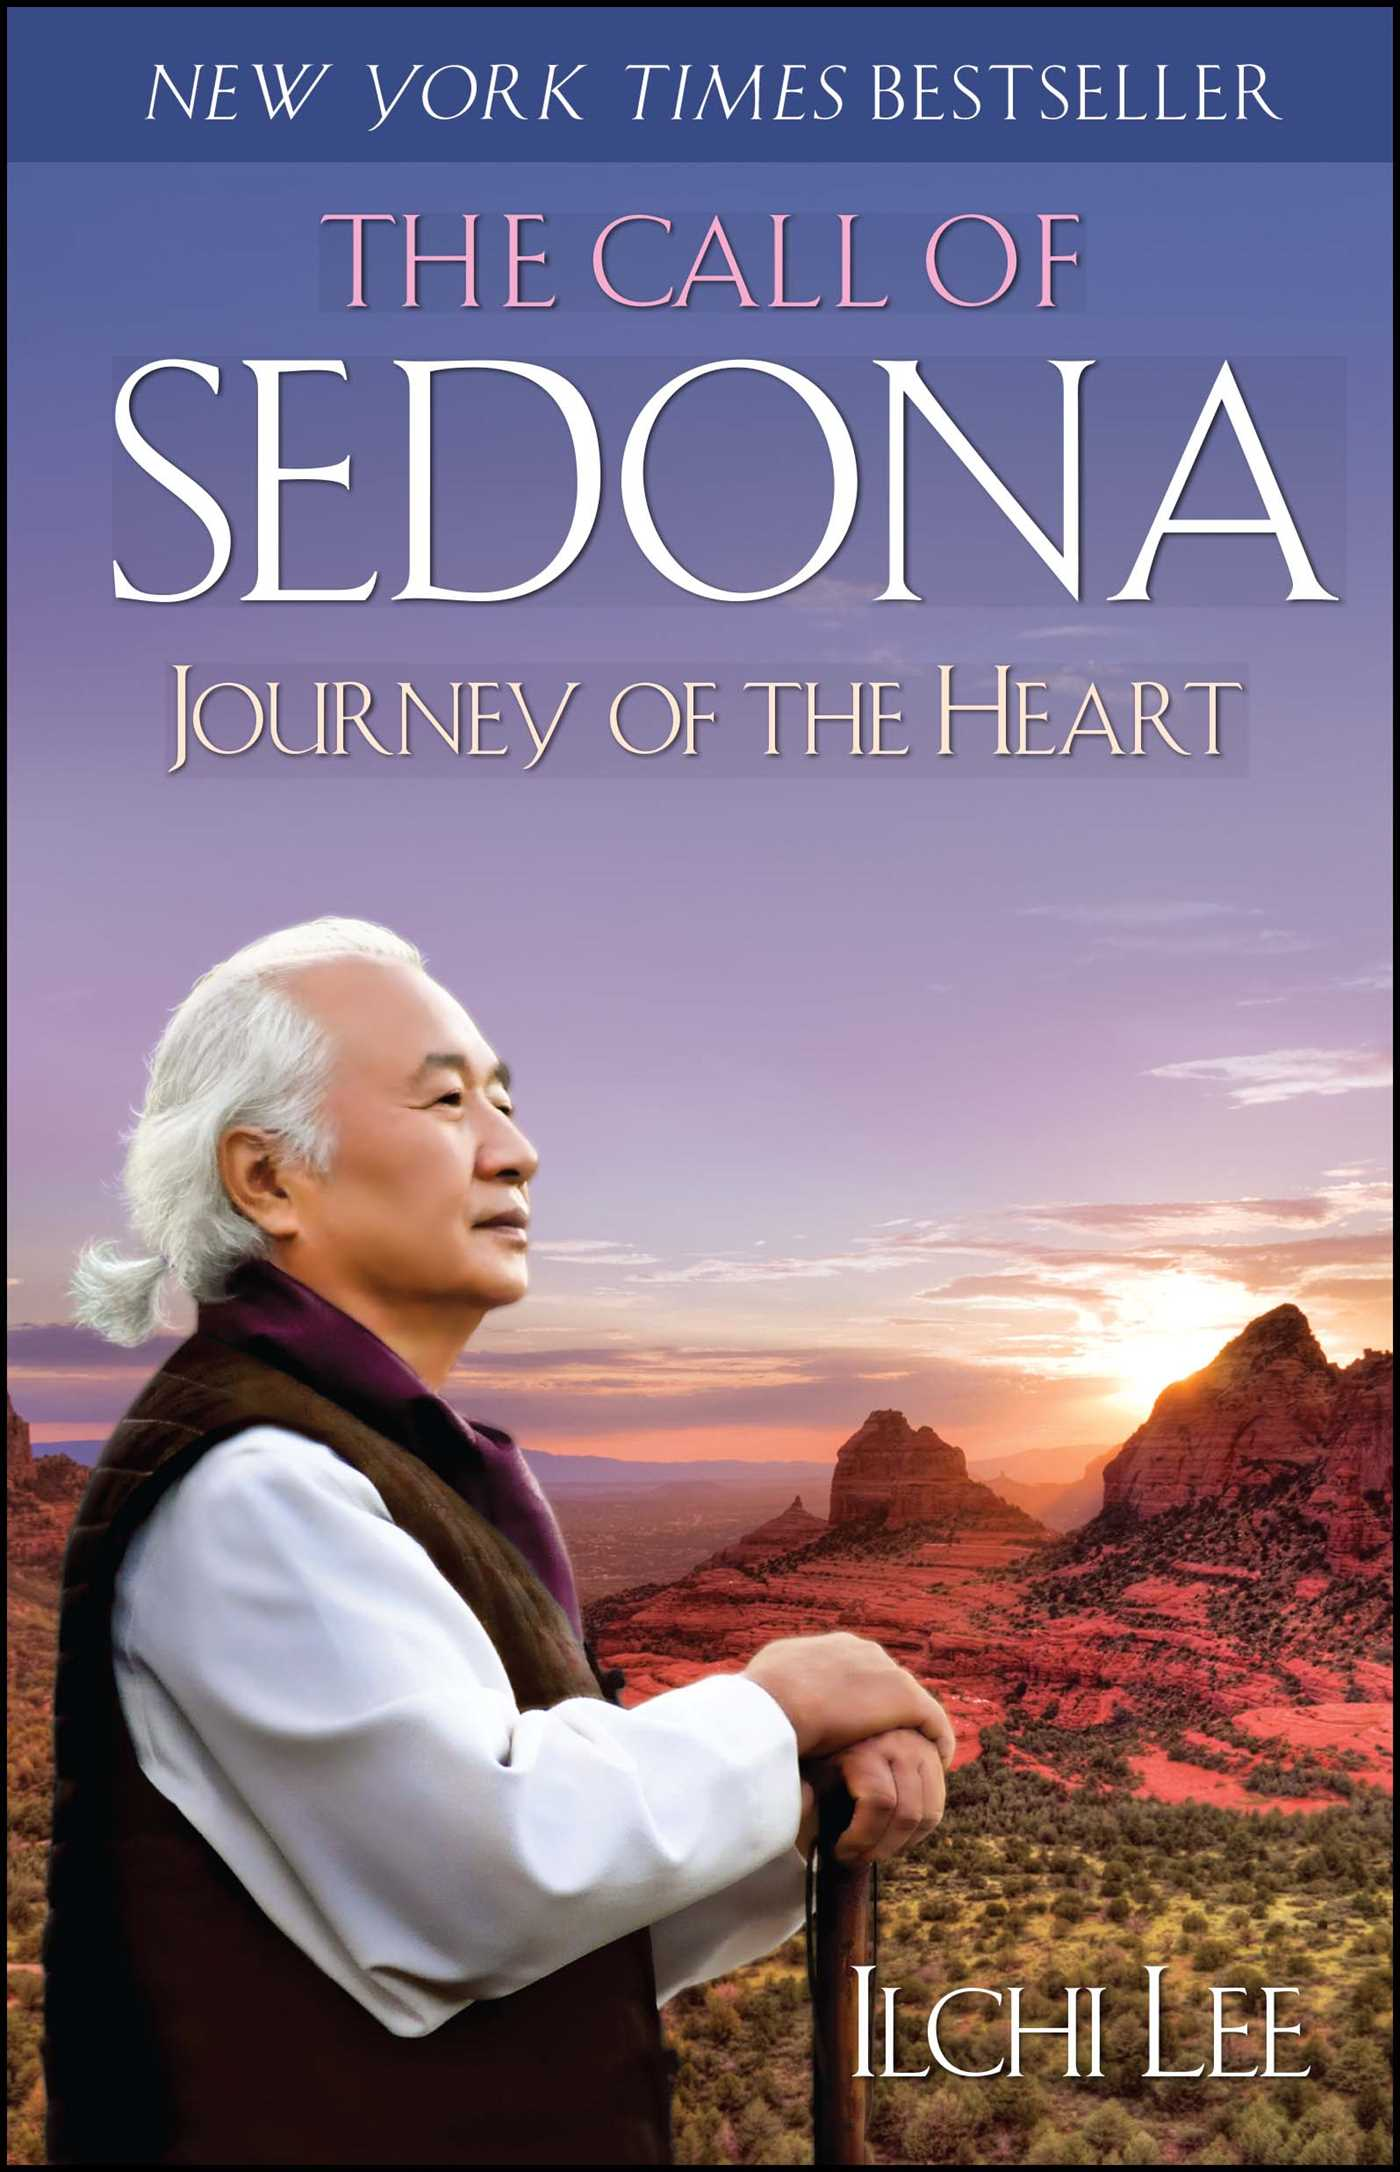 The call of sedona 9781451695809 hr